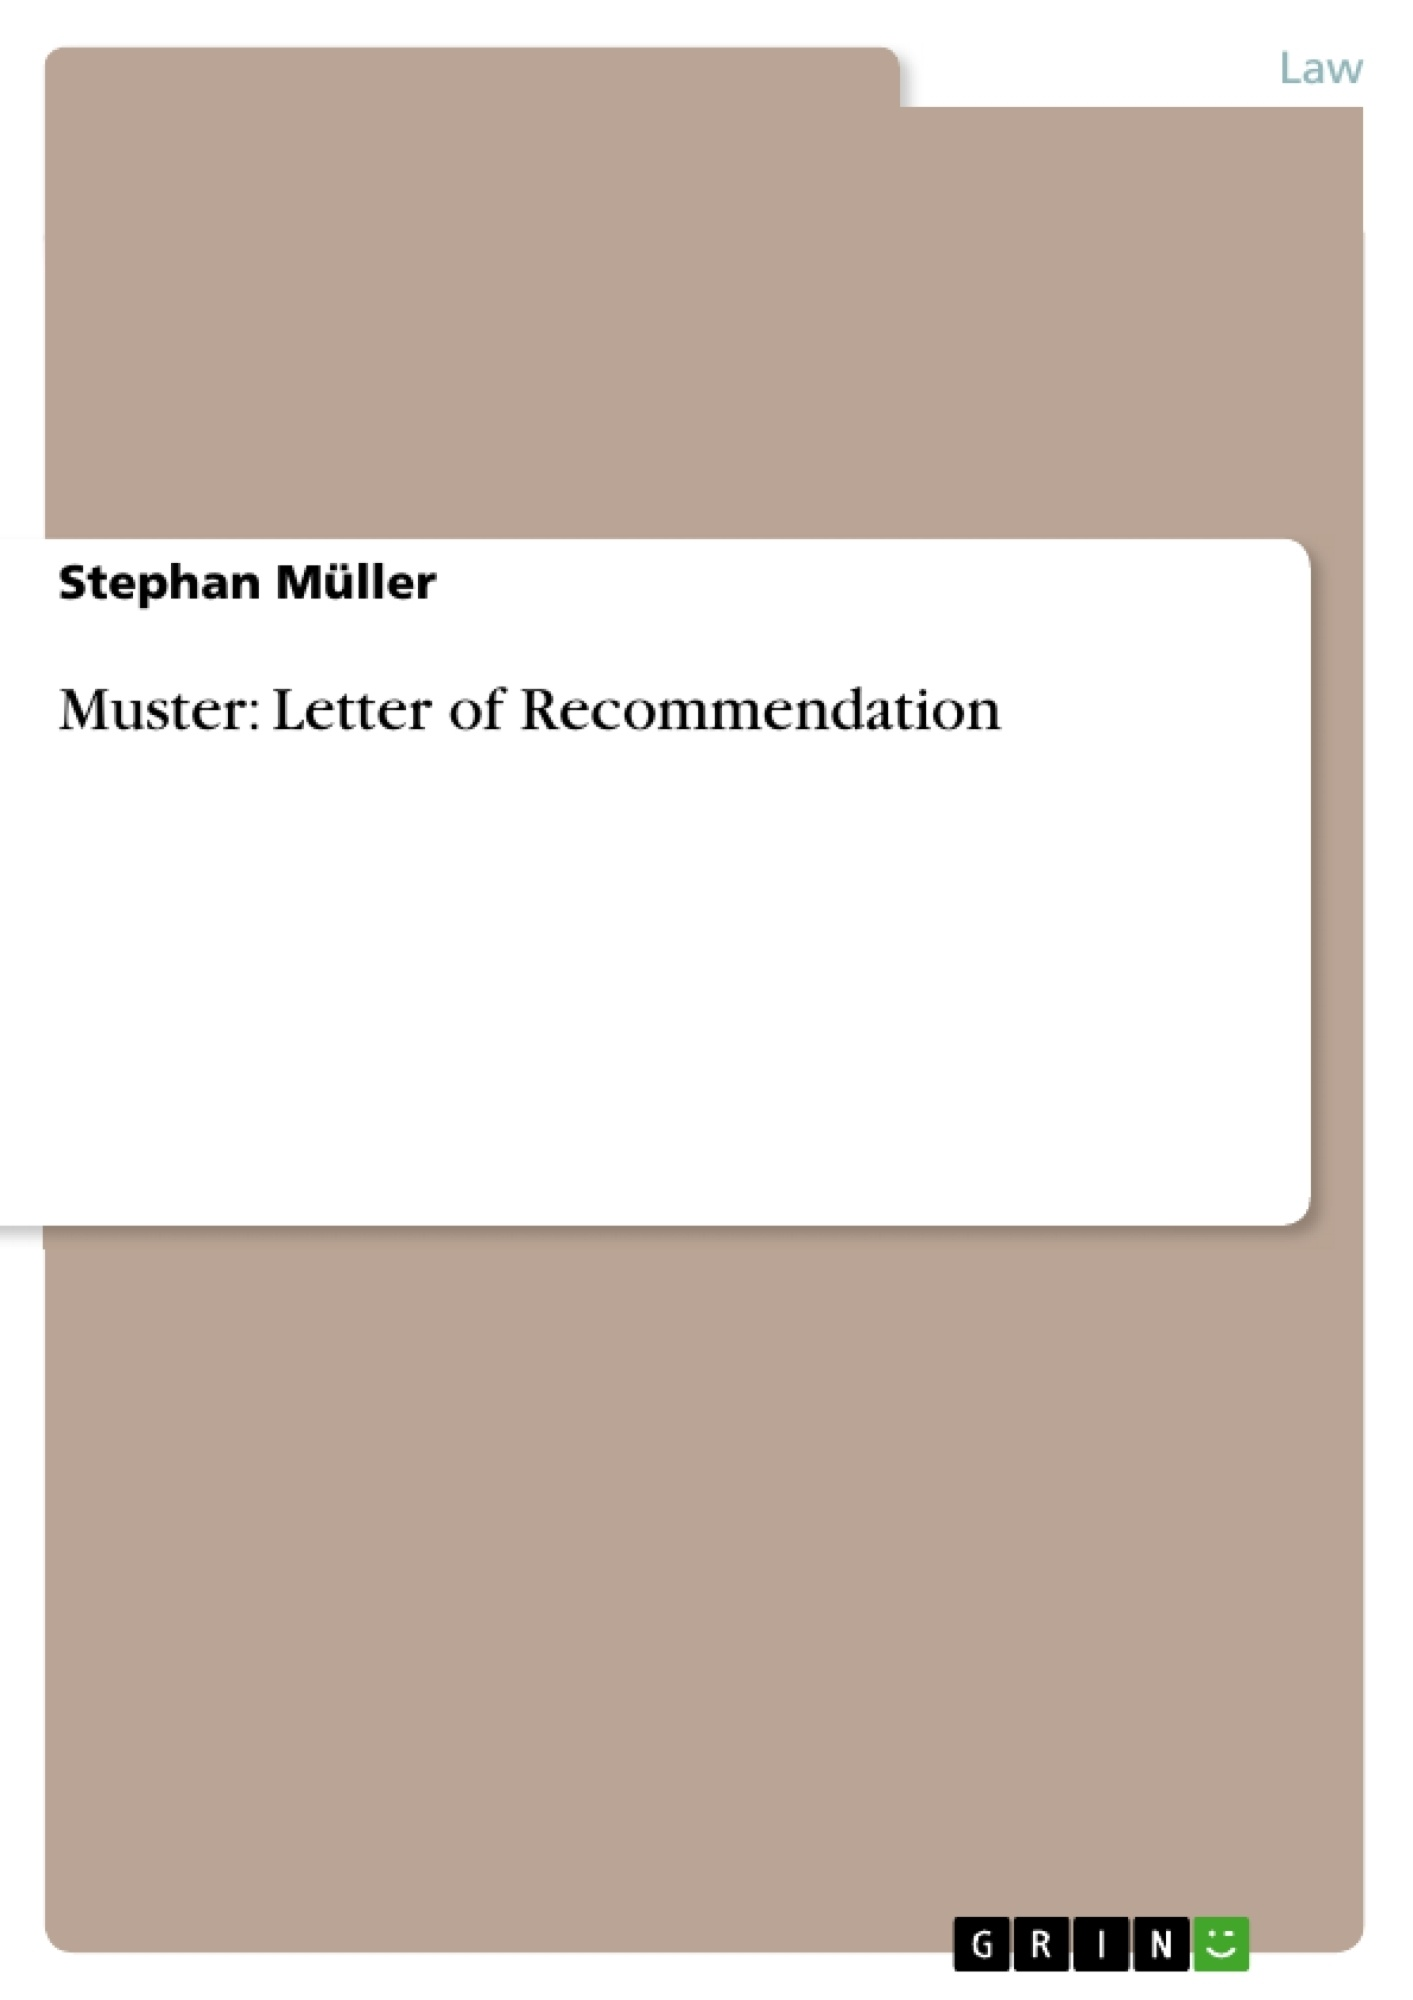 Title: Muster: Letter of Recommendation